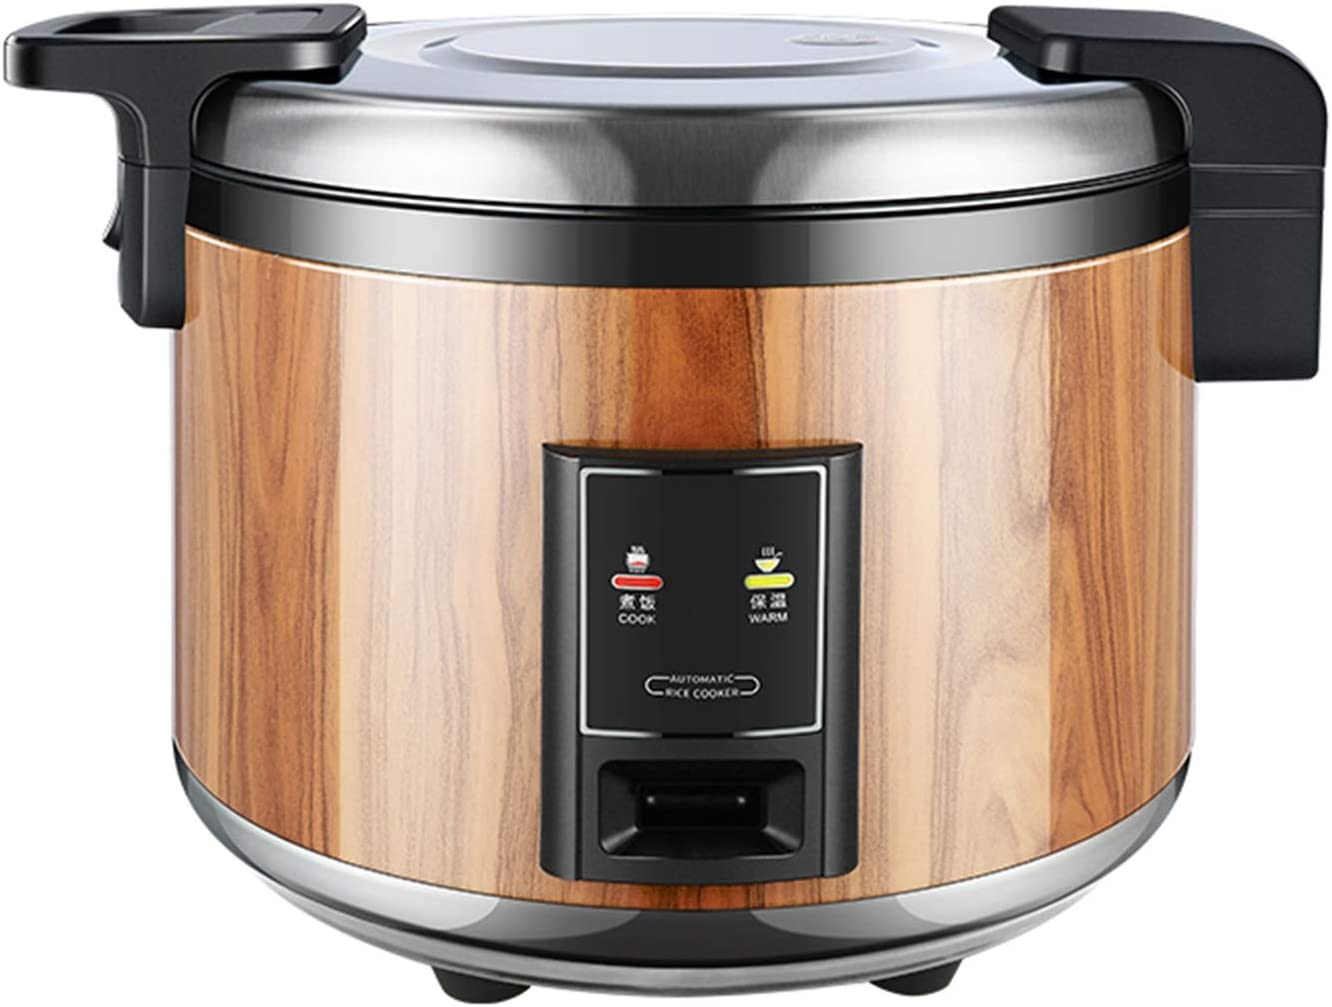 Commercial High-capacity Rice Cooker, 10-15-20-50 People Large Canteen Restaurant Electric Rice Cooker Home Kitchen Cooking Pressure Cooker (Color : Wood grain color, Size : 23L)